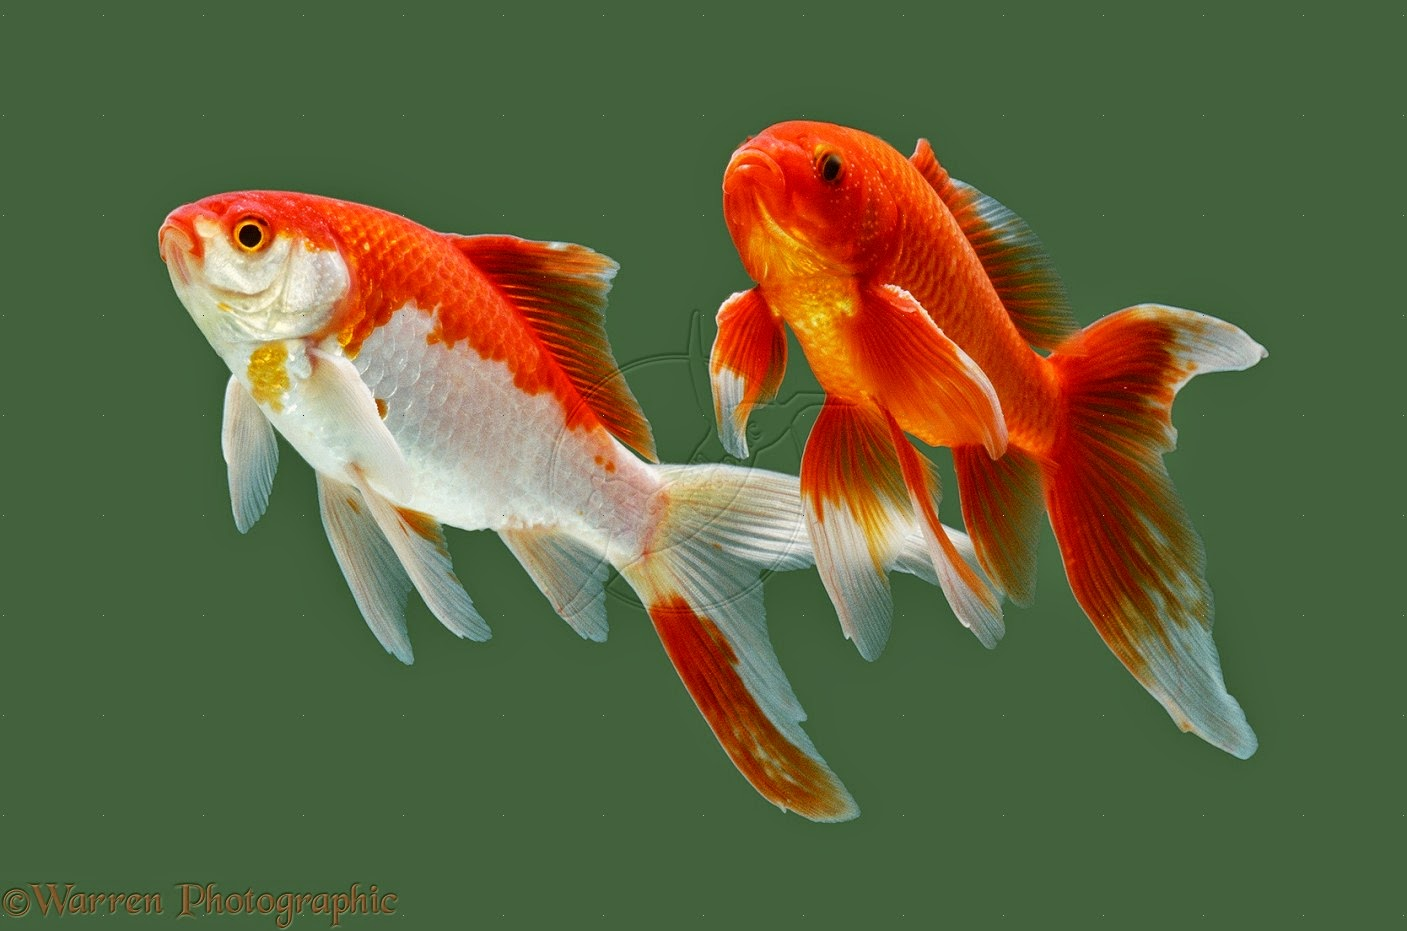 Thader tendencias mascotas el goldfish for Peces de pecera